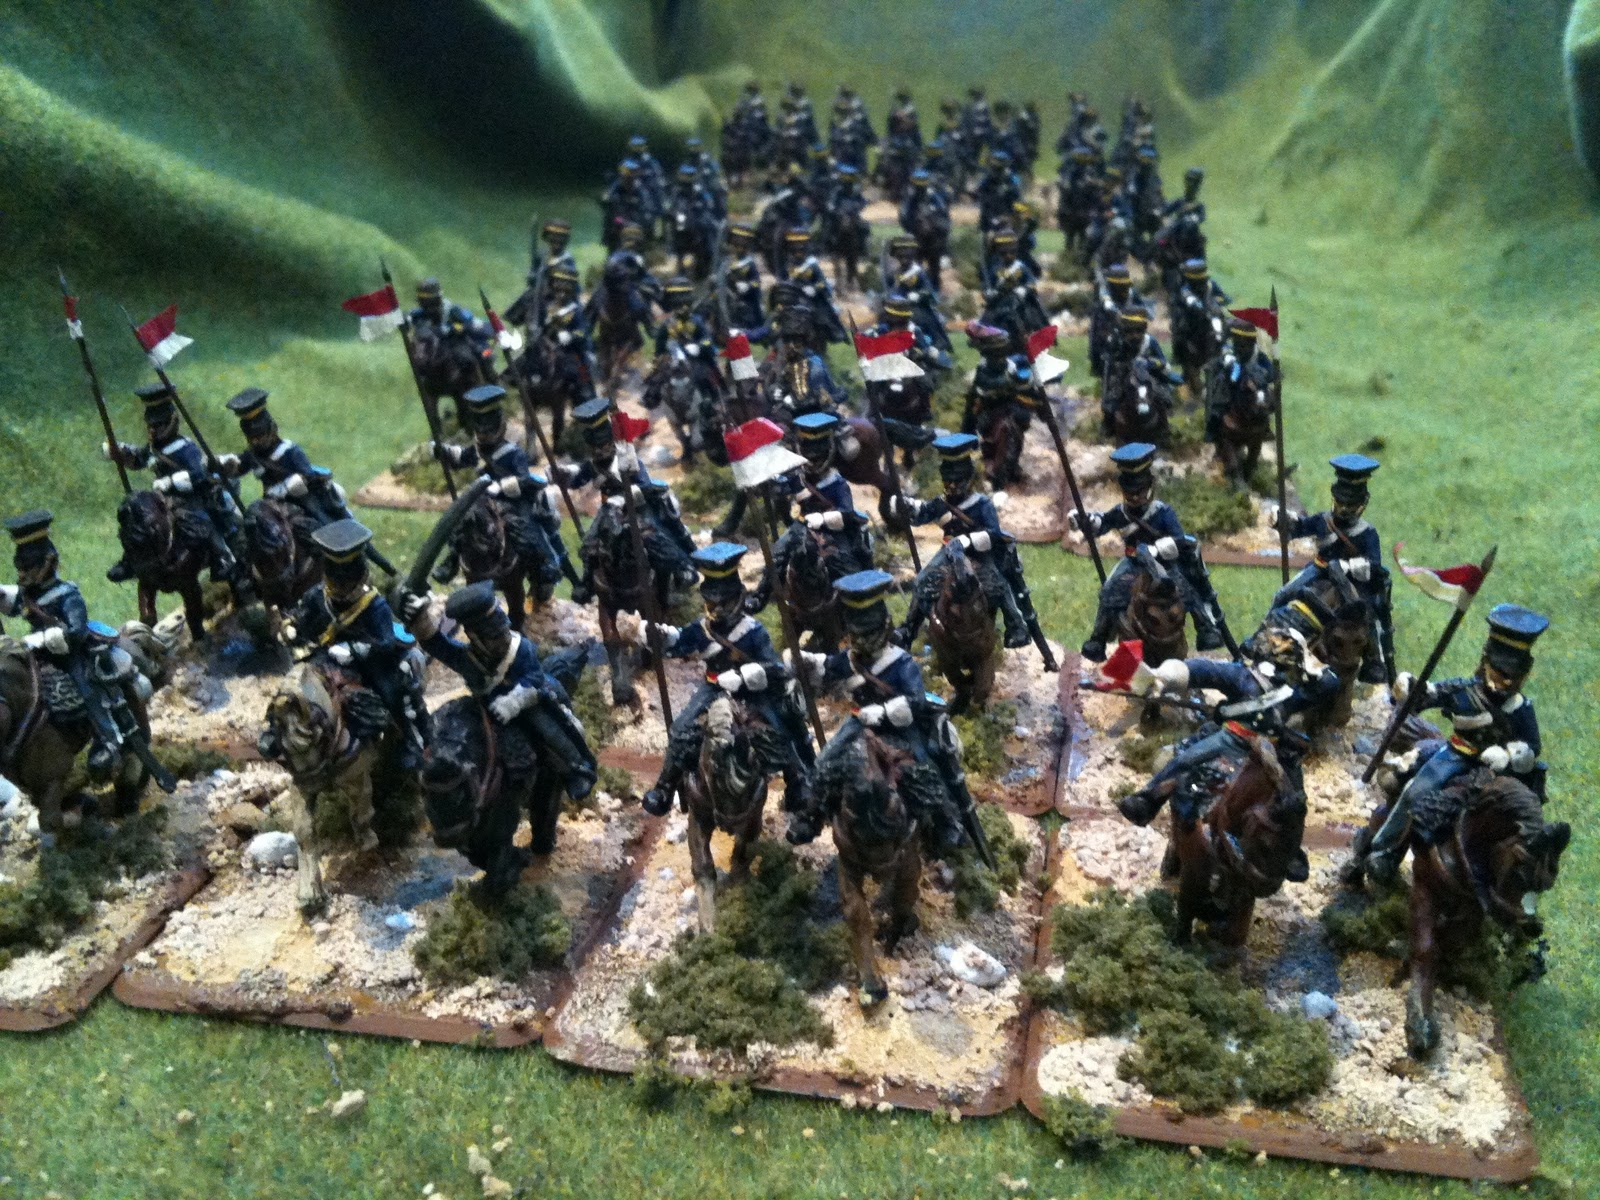 the charge of the light brigade On 25 october 1854, as part of the battle of balaklava, an episode in the crimean war, the light cavalry brigade of the british army made a disastrous frontal assault upon a well-positioned battery of russian artillery.